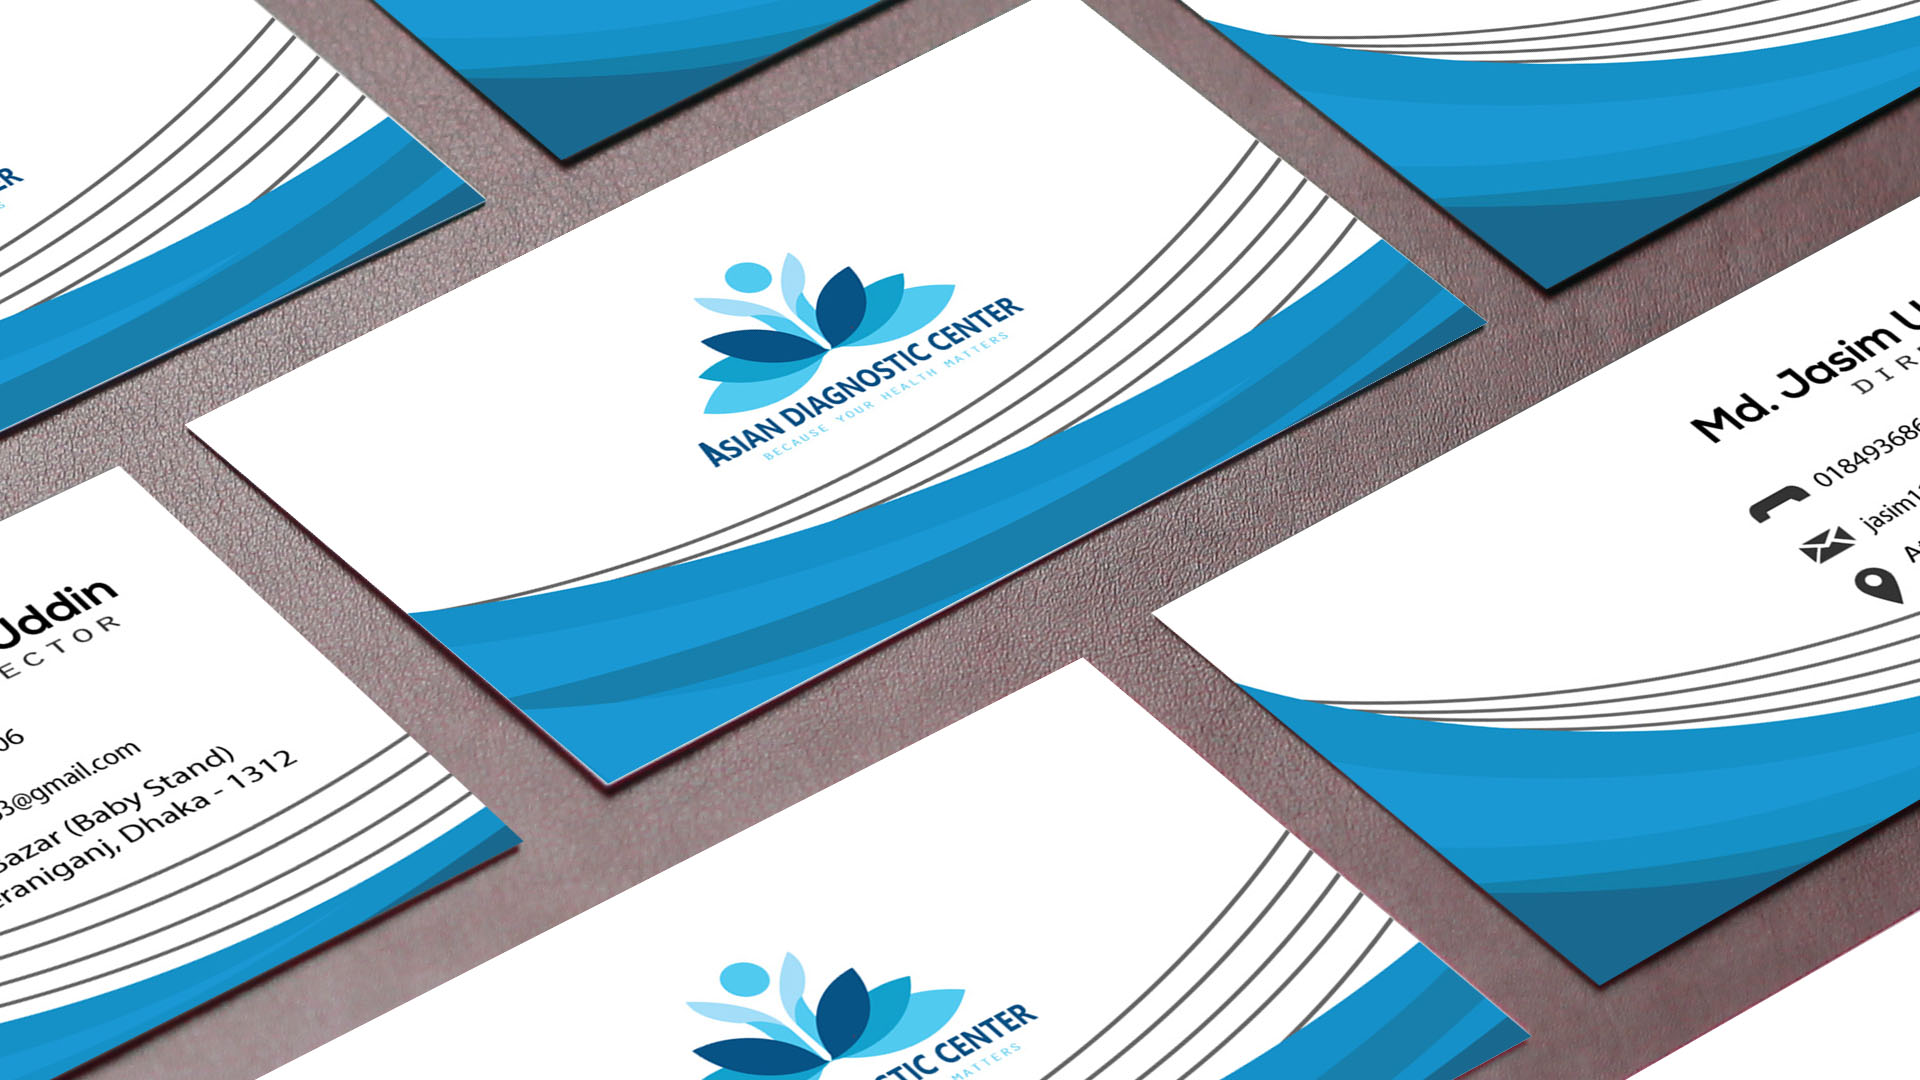 I will design outstanding business card for you in 4 hours